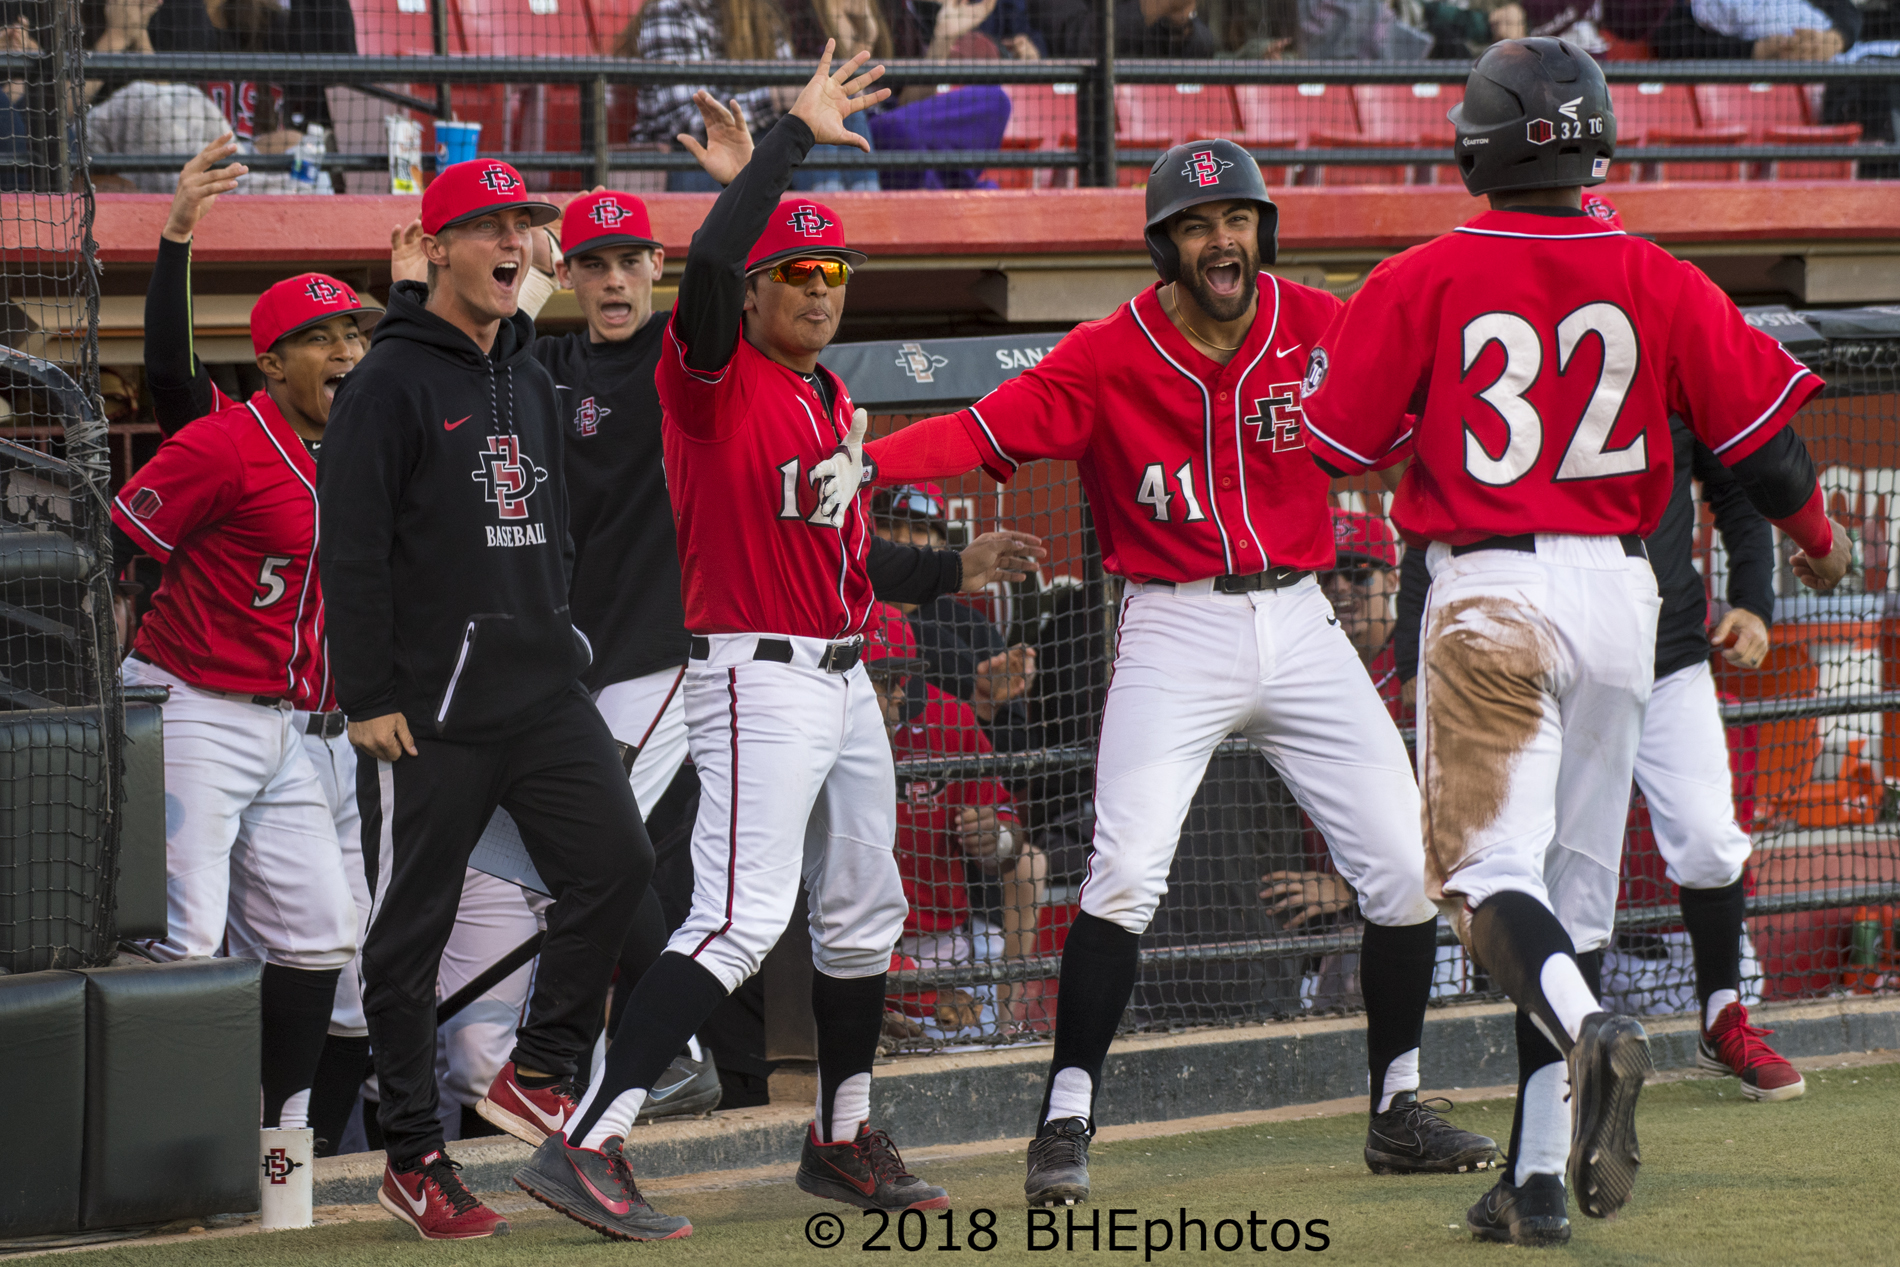 san diego state defeats gcu 5-4 in come from behind fashion at the